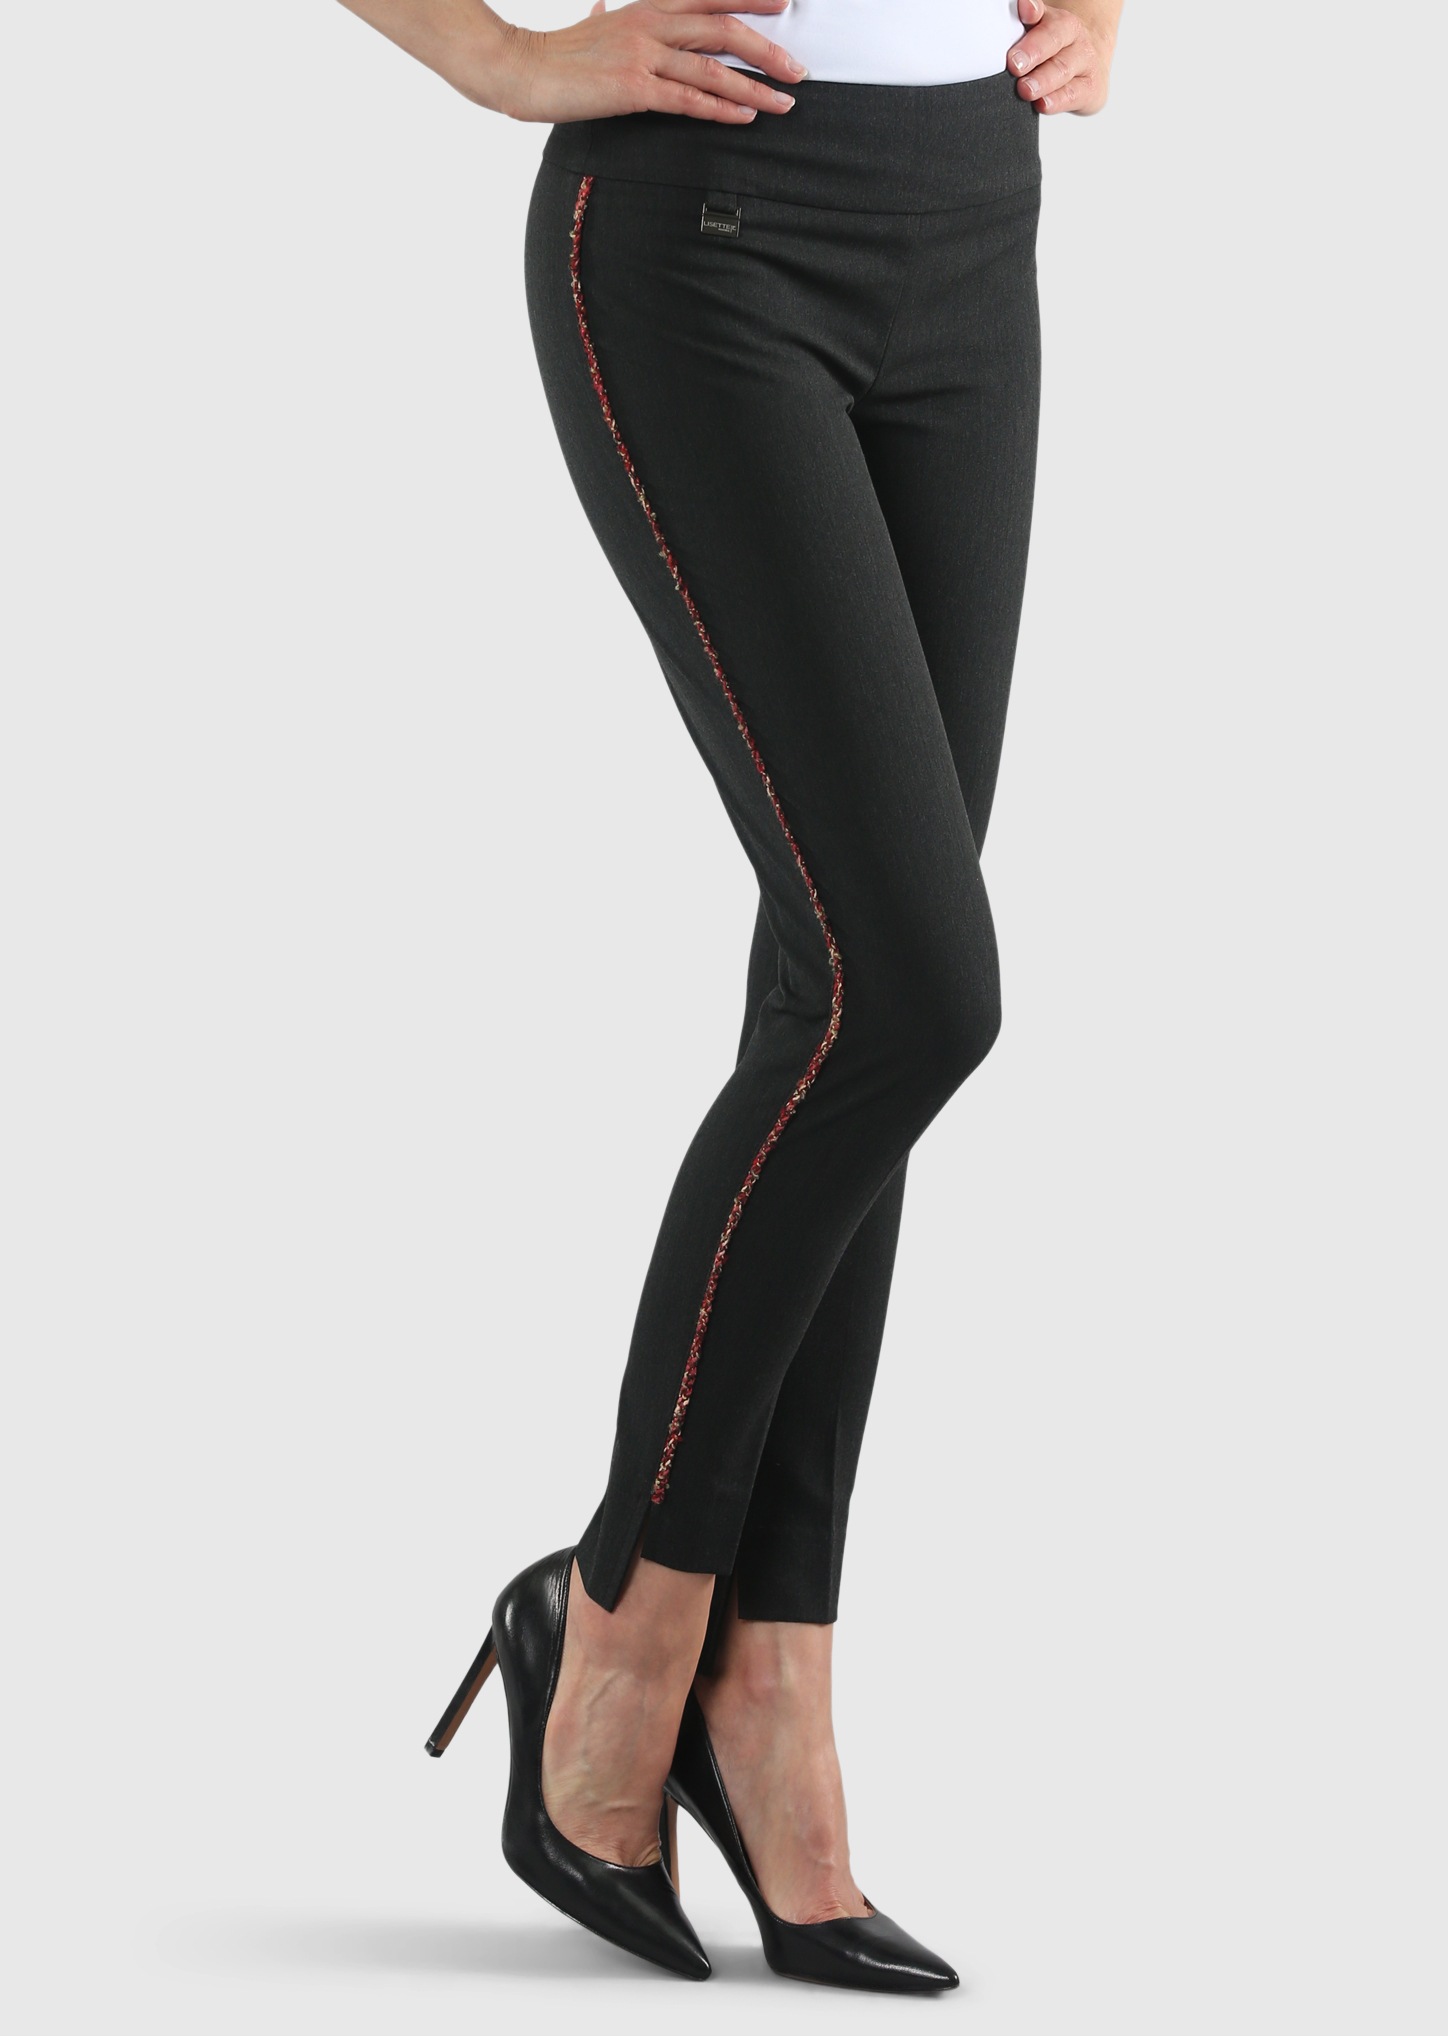 Lisette L. Slim Ankle Hi-Lo Pant Style 22729 Gaby Stretch Tweed Piping, 4 Colors Available